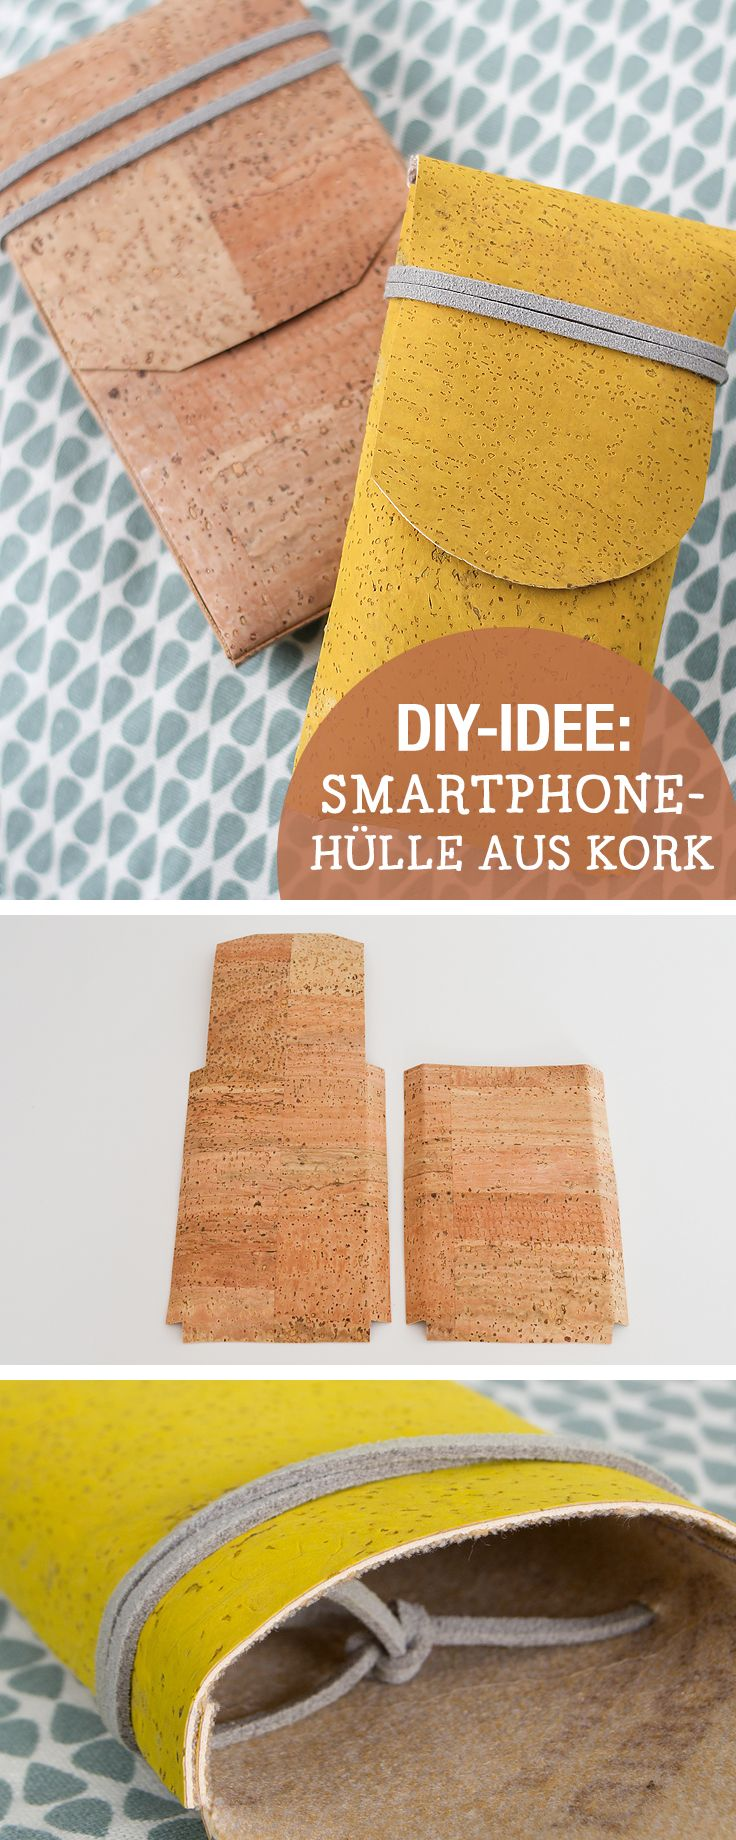 DIY-Anleitung für Smartphone Hülle aus Kork, Handytasche selbermachen / diy tutorial for smartphone cases made of cork, crafting with cork via DaWanda.com